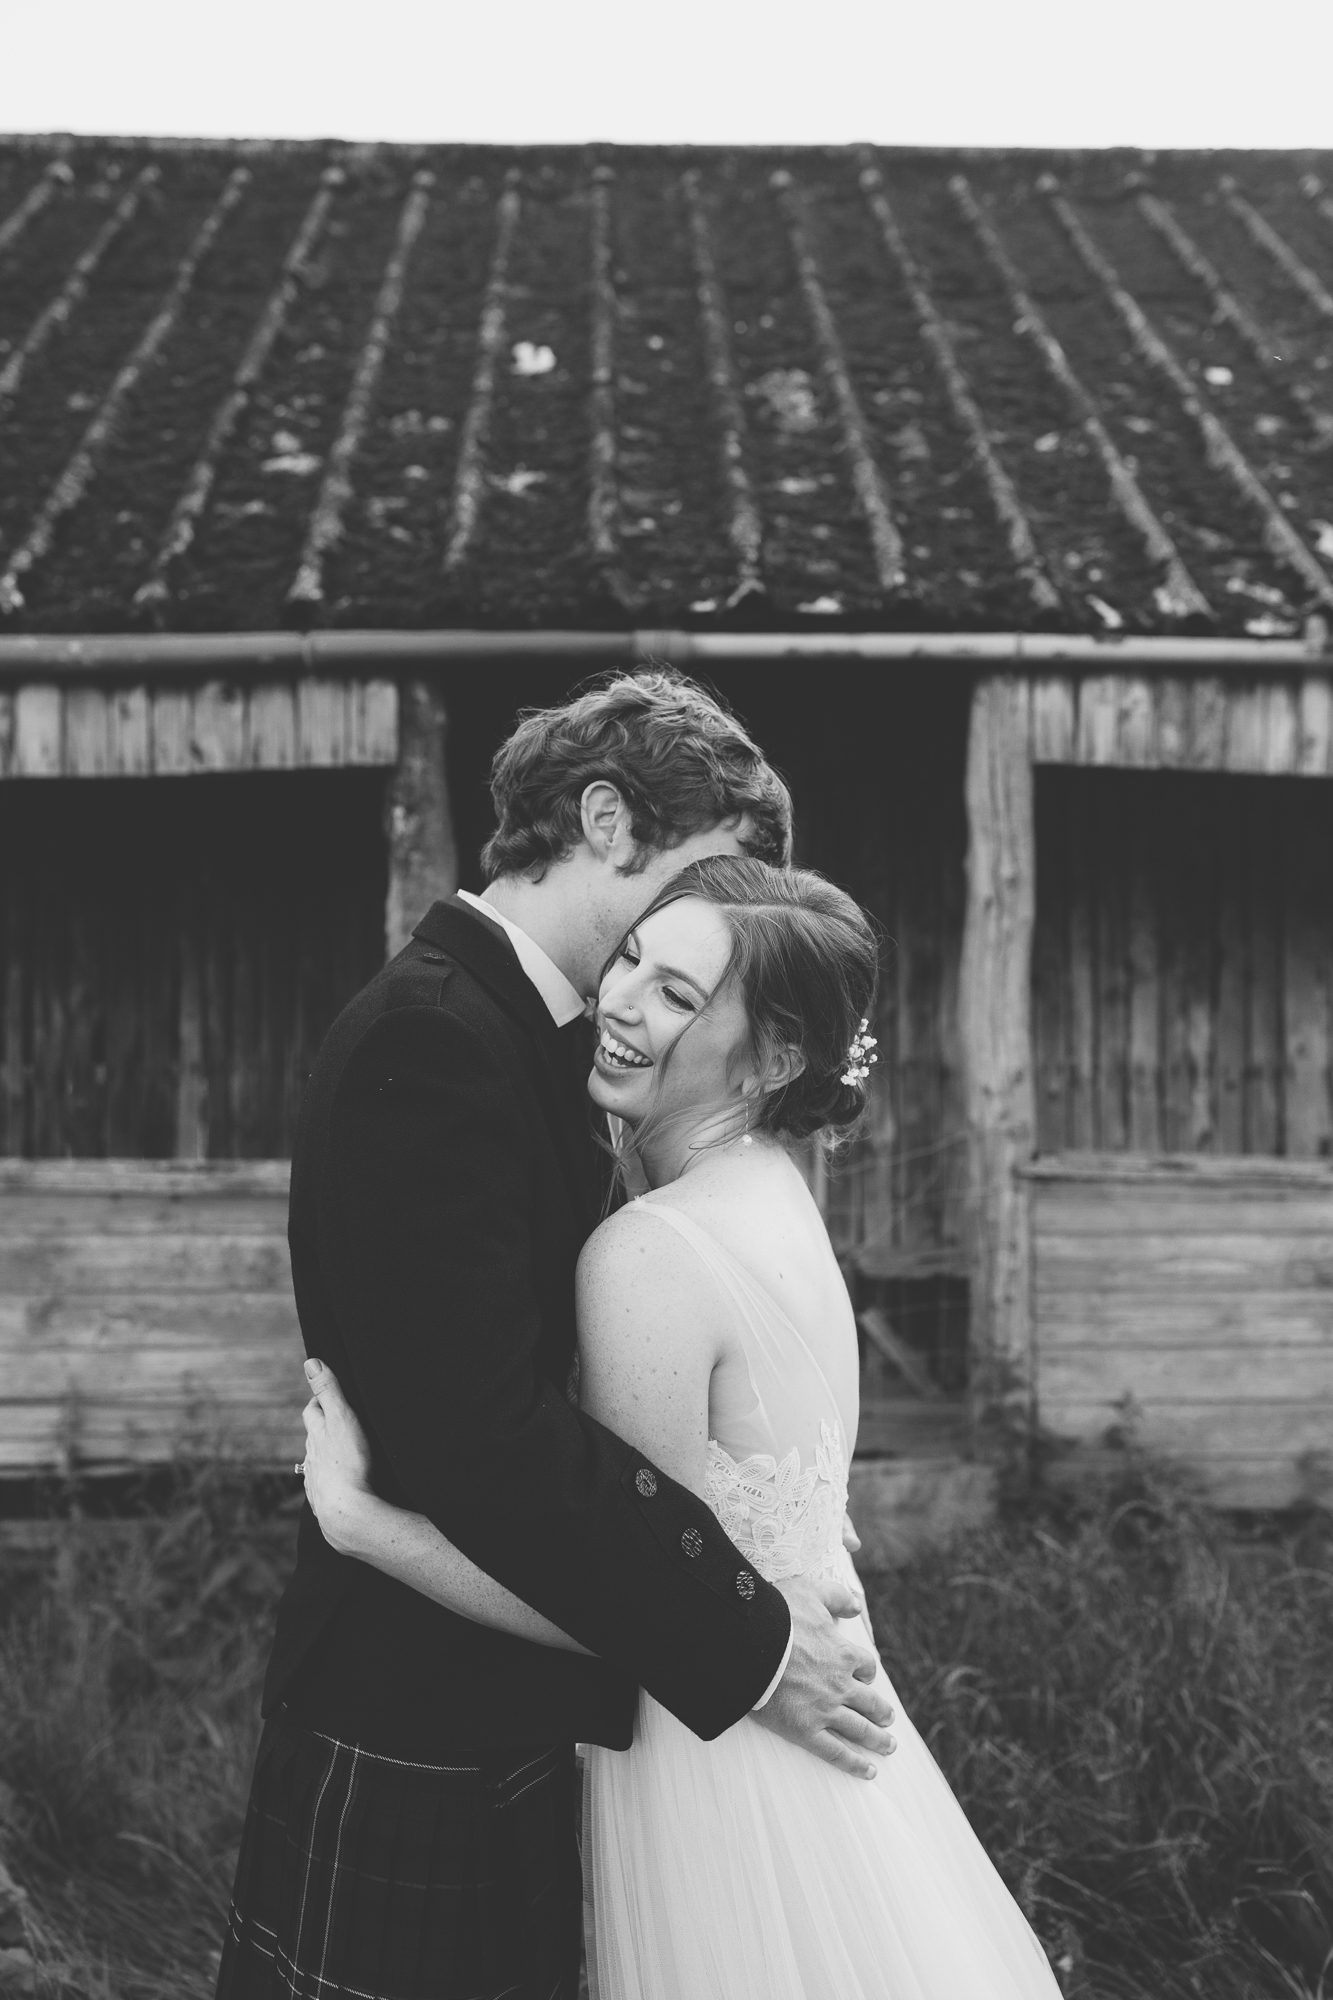 aberdeenweddingphotography (15 of 11).jpg